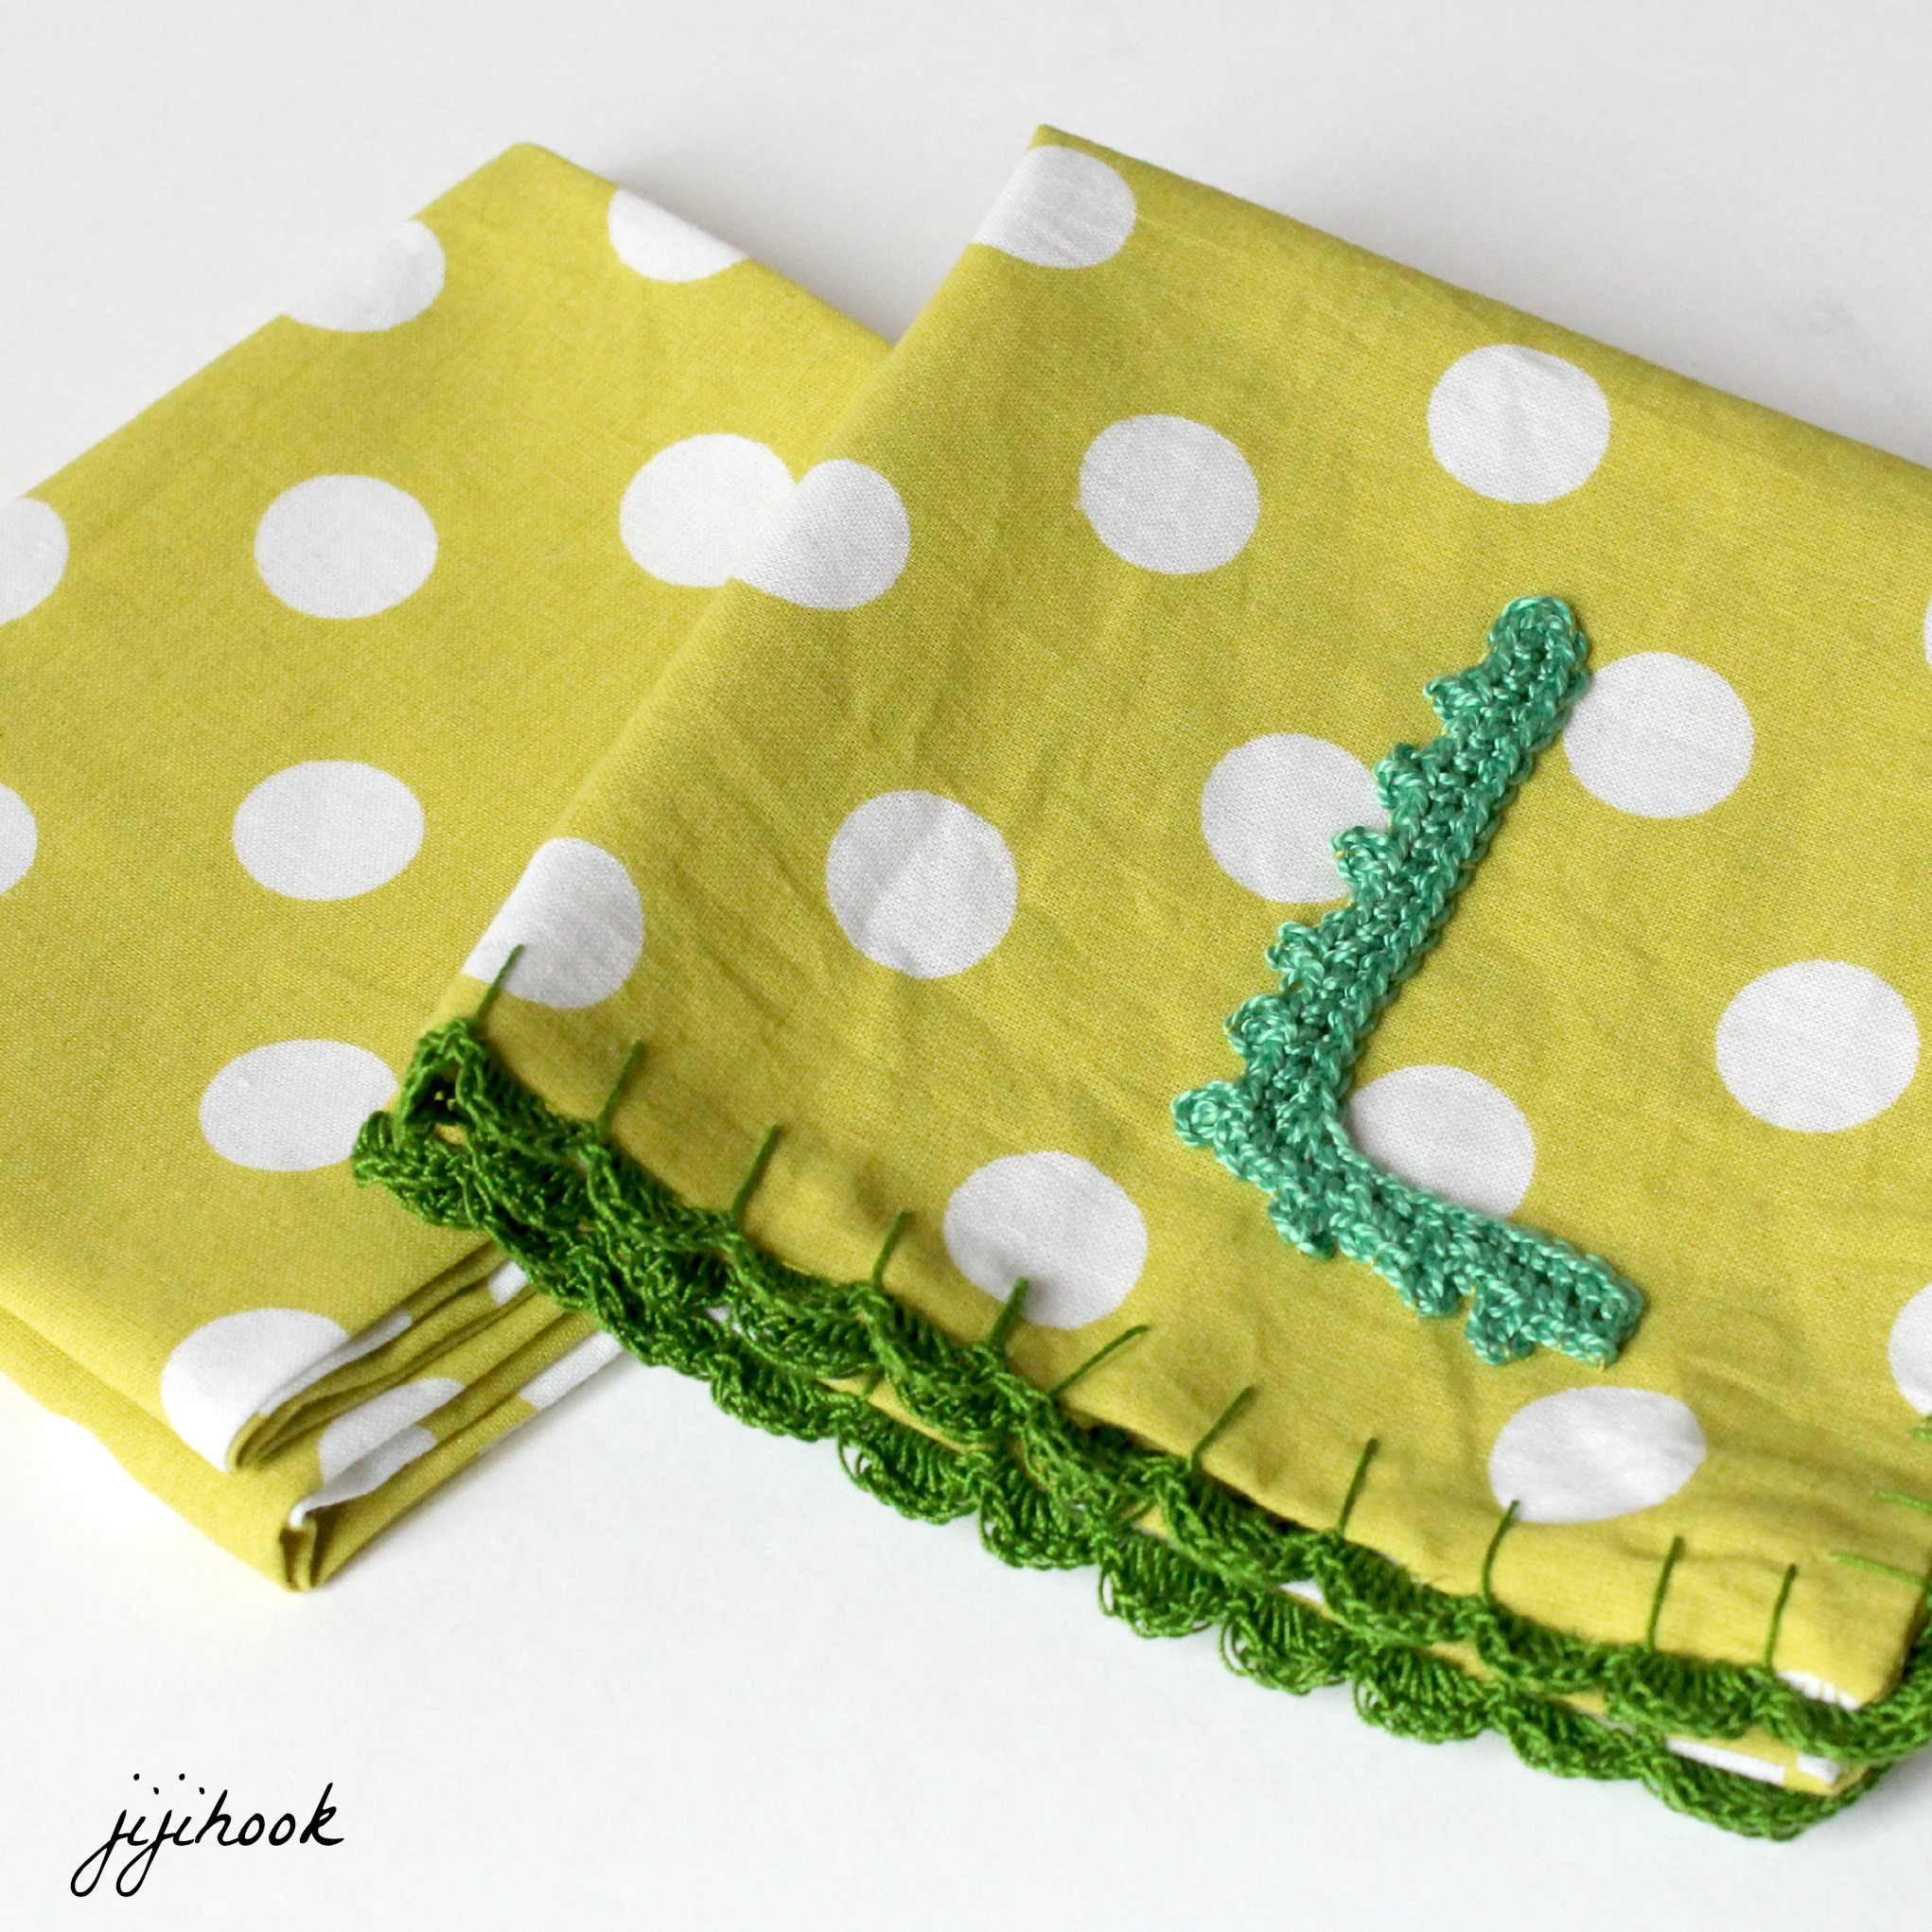 Serviettes de table avec du crochet jiji hook - Serviette de table tissu ikea ...